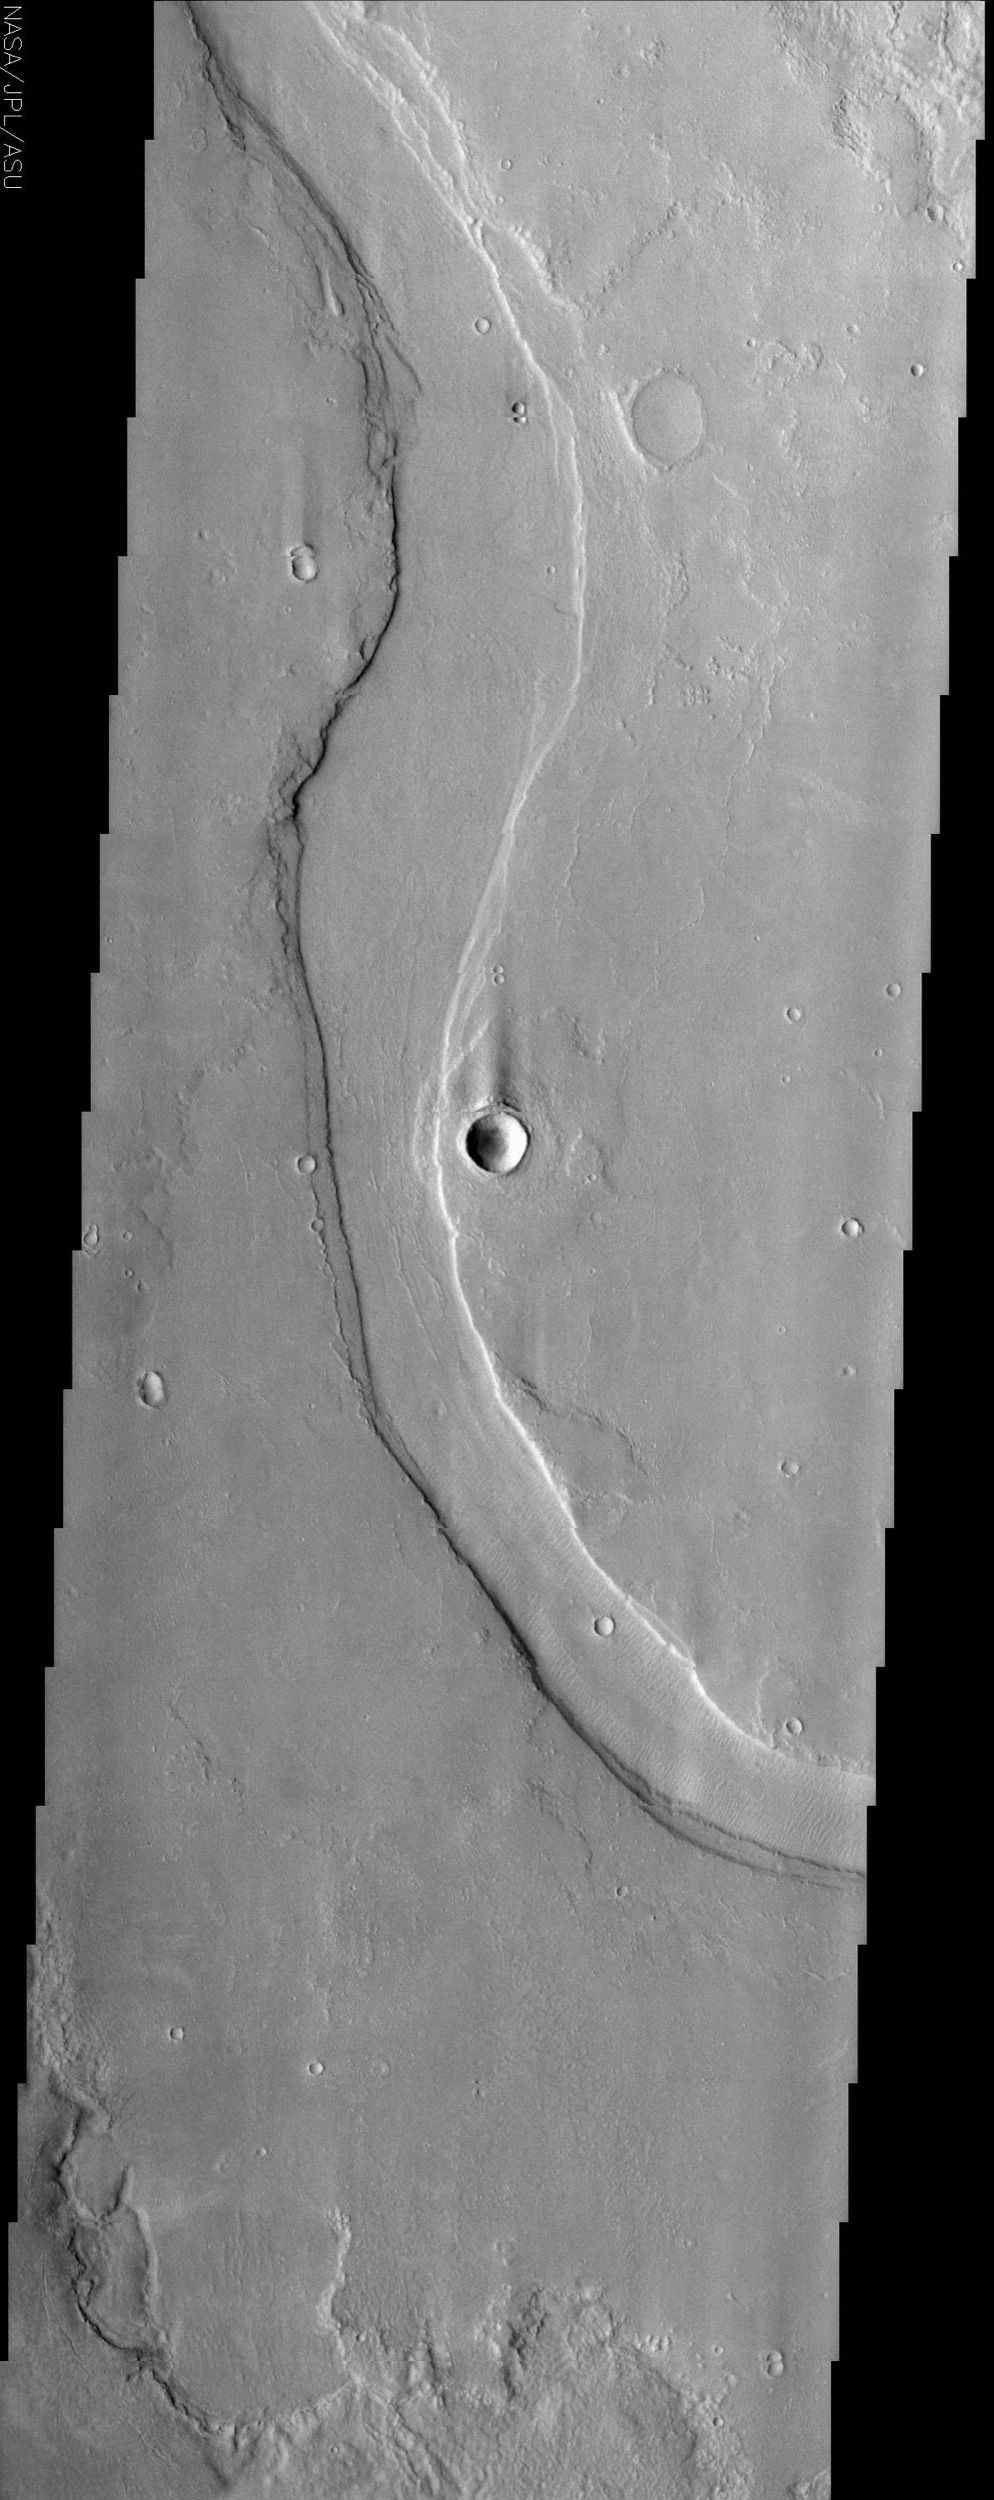 Hrad Valles, seen in this image from NASA's Mars Odyssey spacecraft, is located north-northwest of the large Elysium Mons volcanic complex and is yet another example of a channel that likely carried fluids.